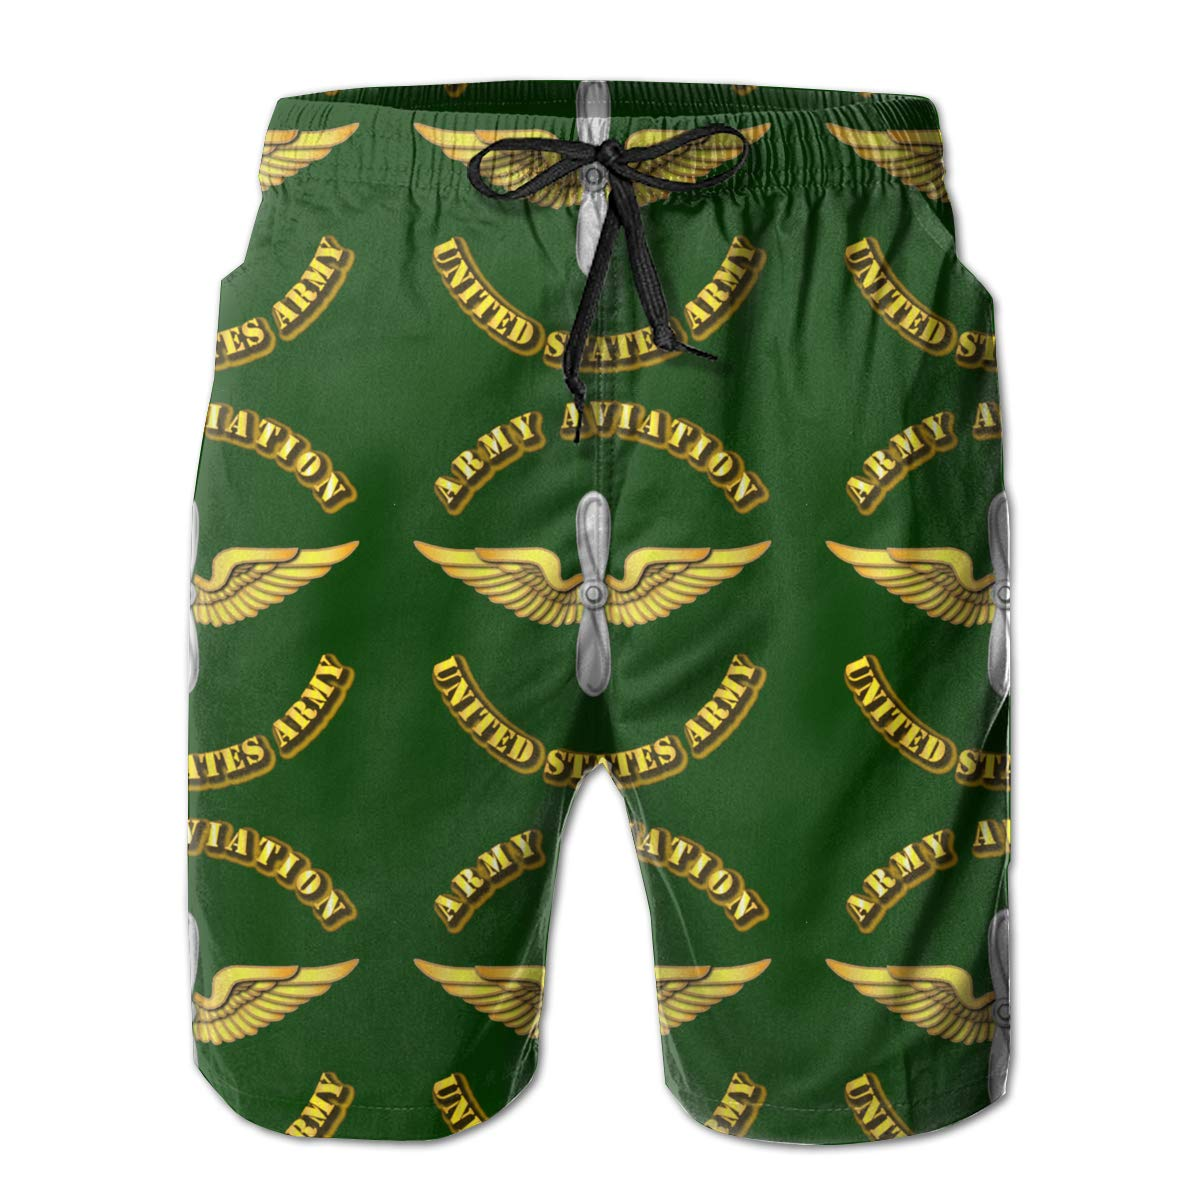 Army Aviation Mens Swim Trunks Bathing Suit Beach Shorts You Know And Good Army